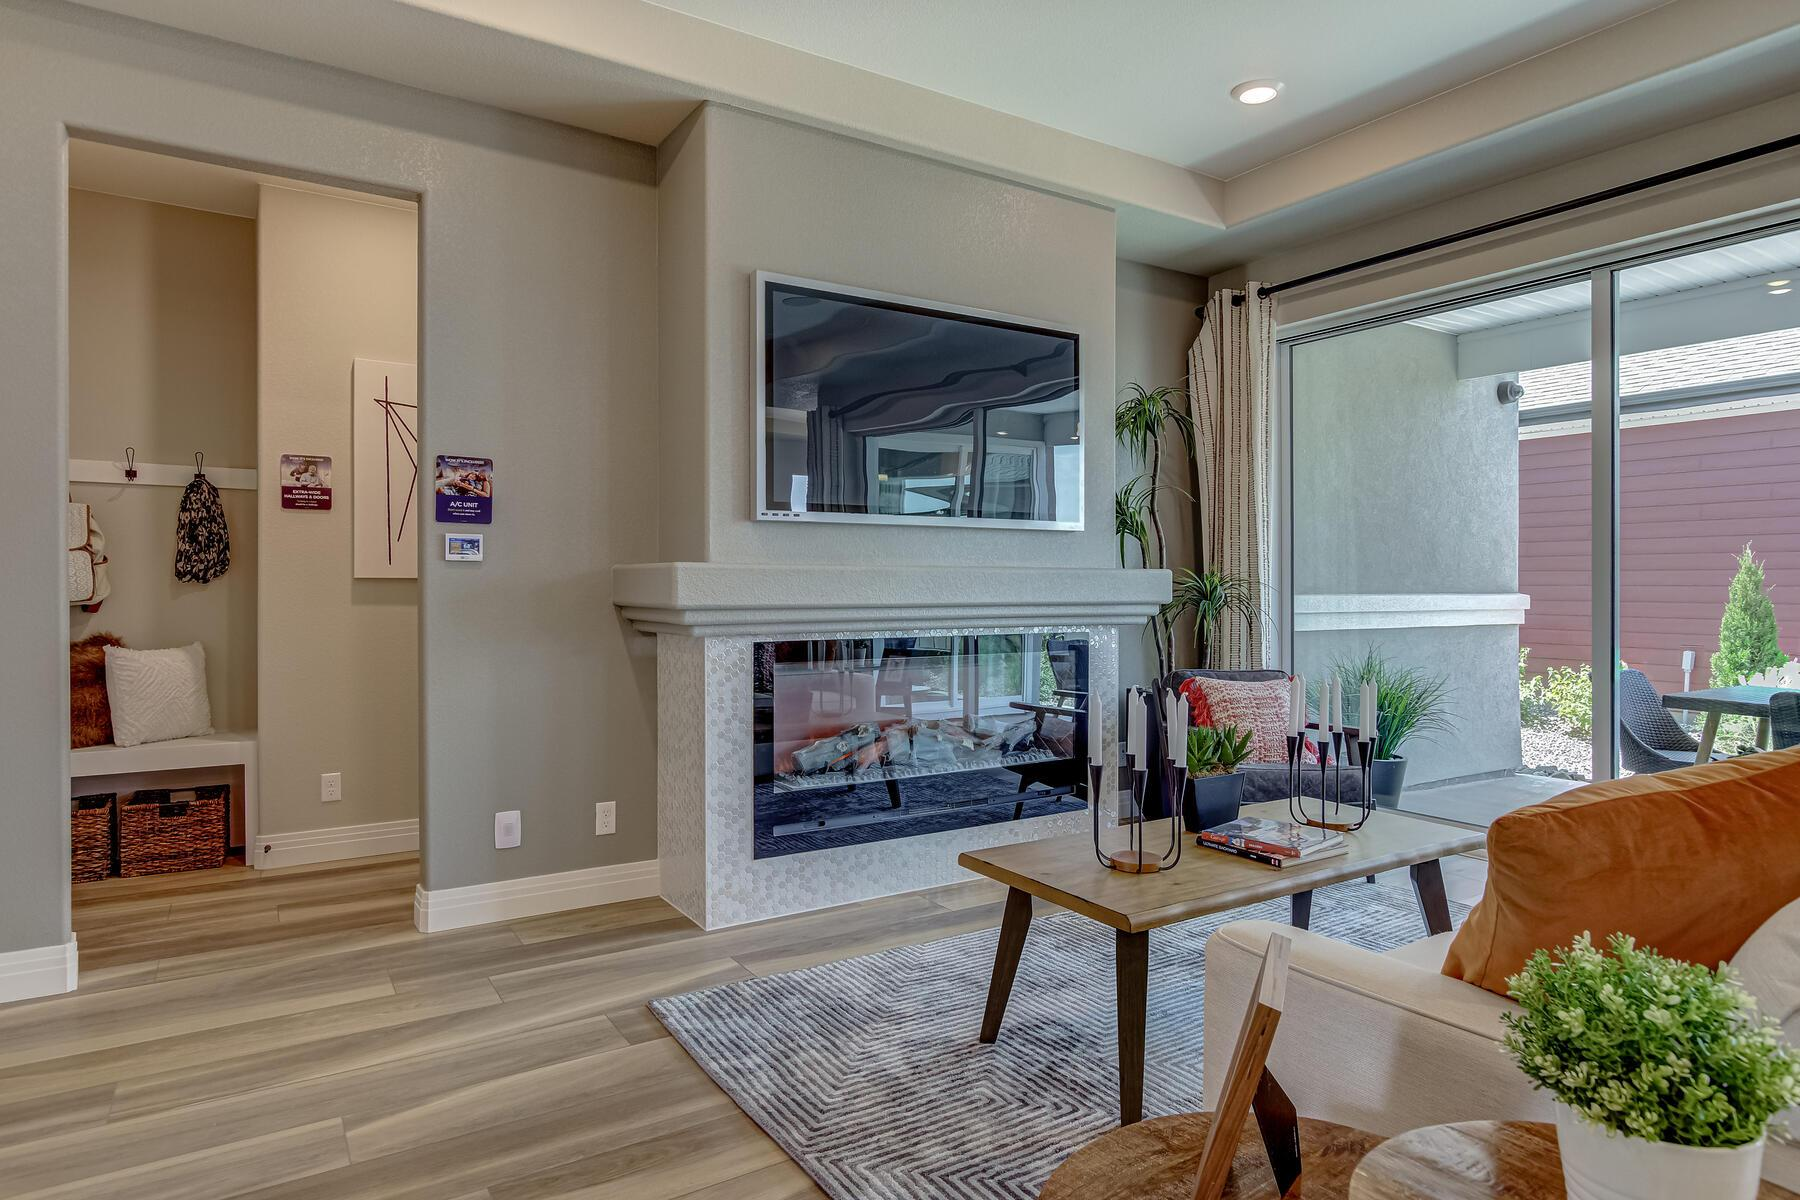 Living Area featured in the Douglas By OakwoodLife in Denver, CO